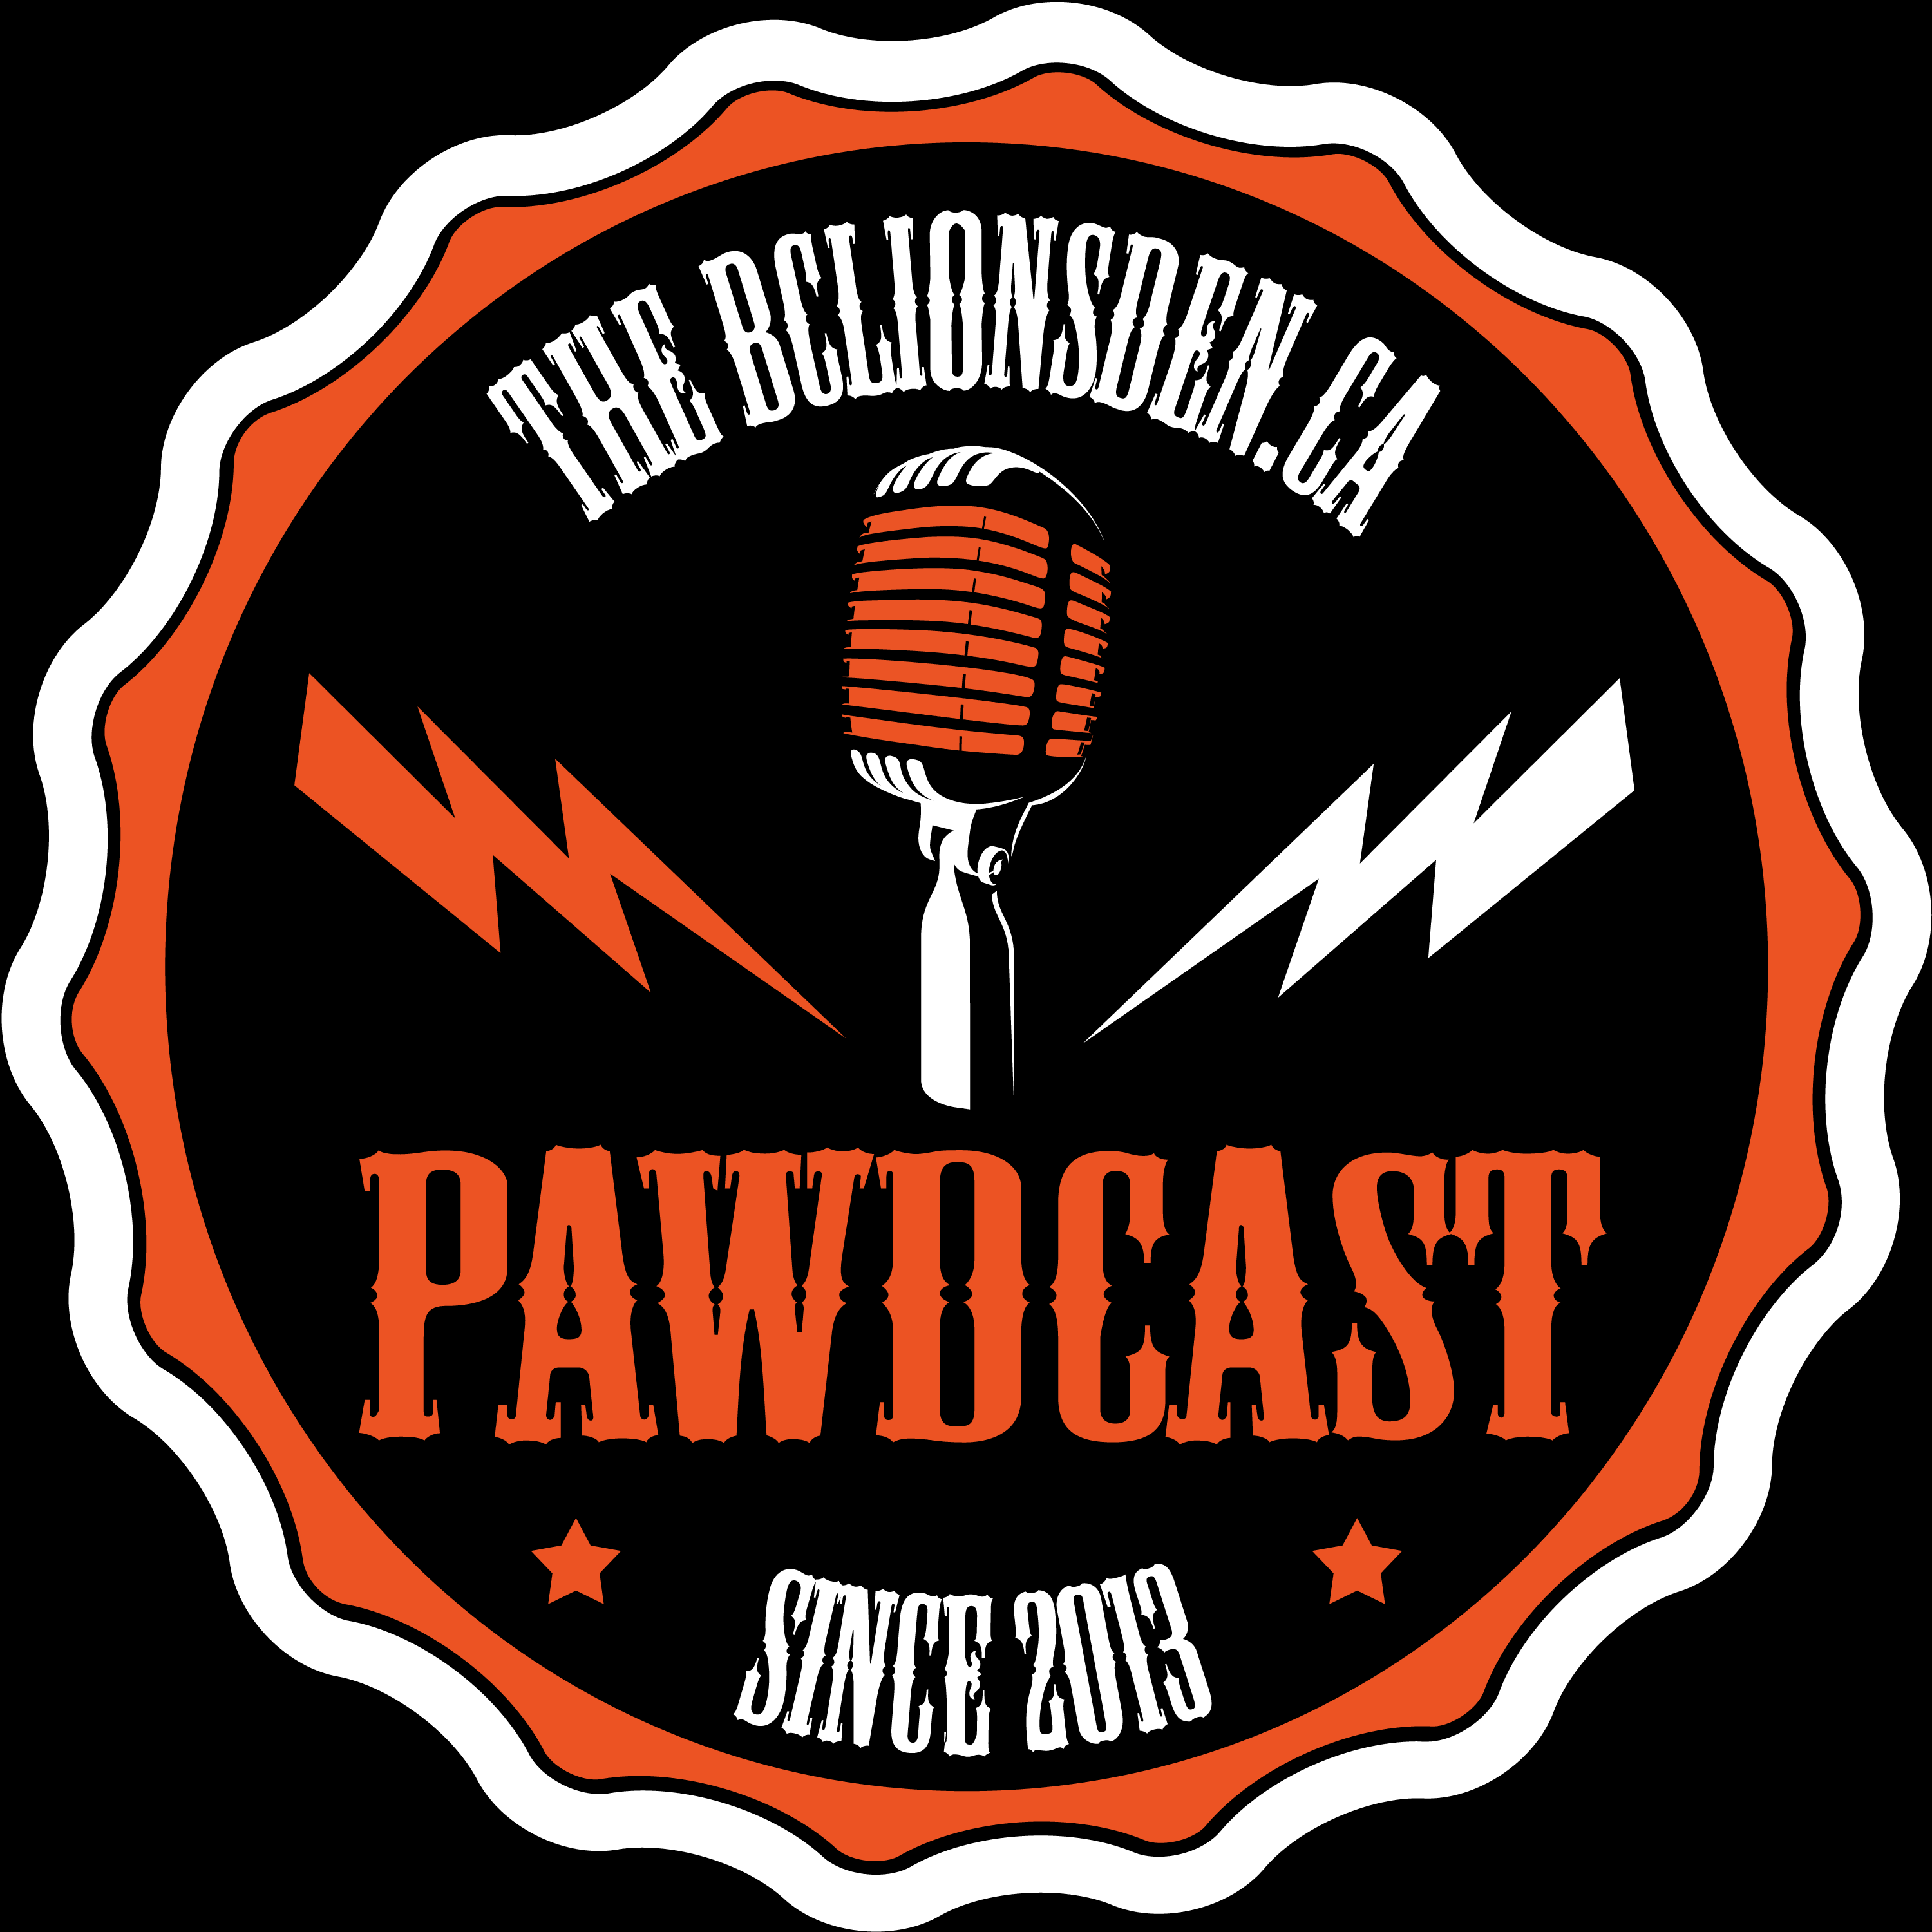 Artwork for podcast The BCLionsDen Pawdcast